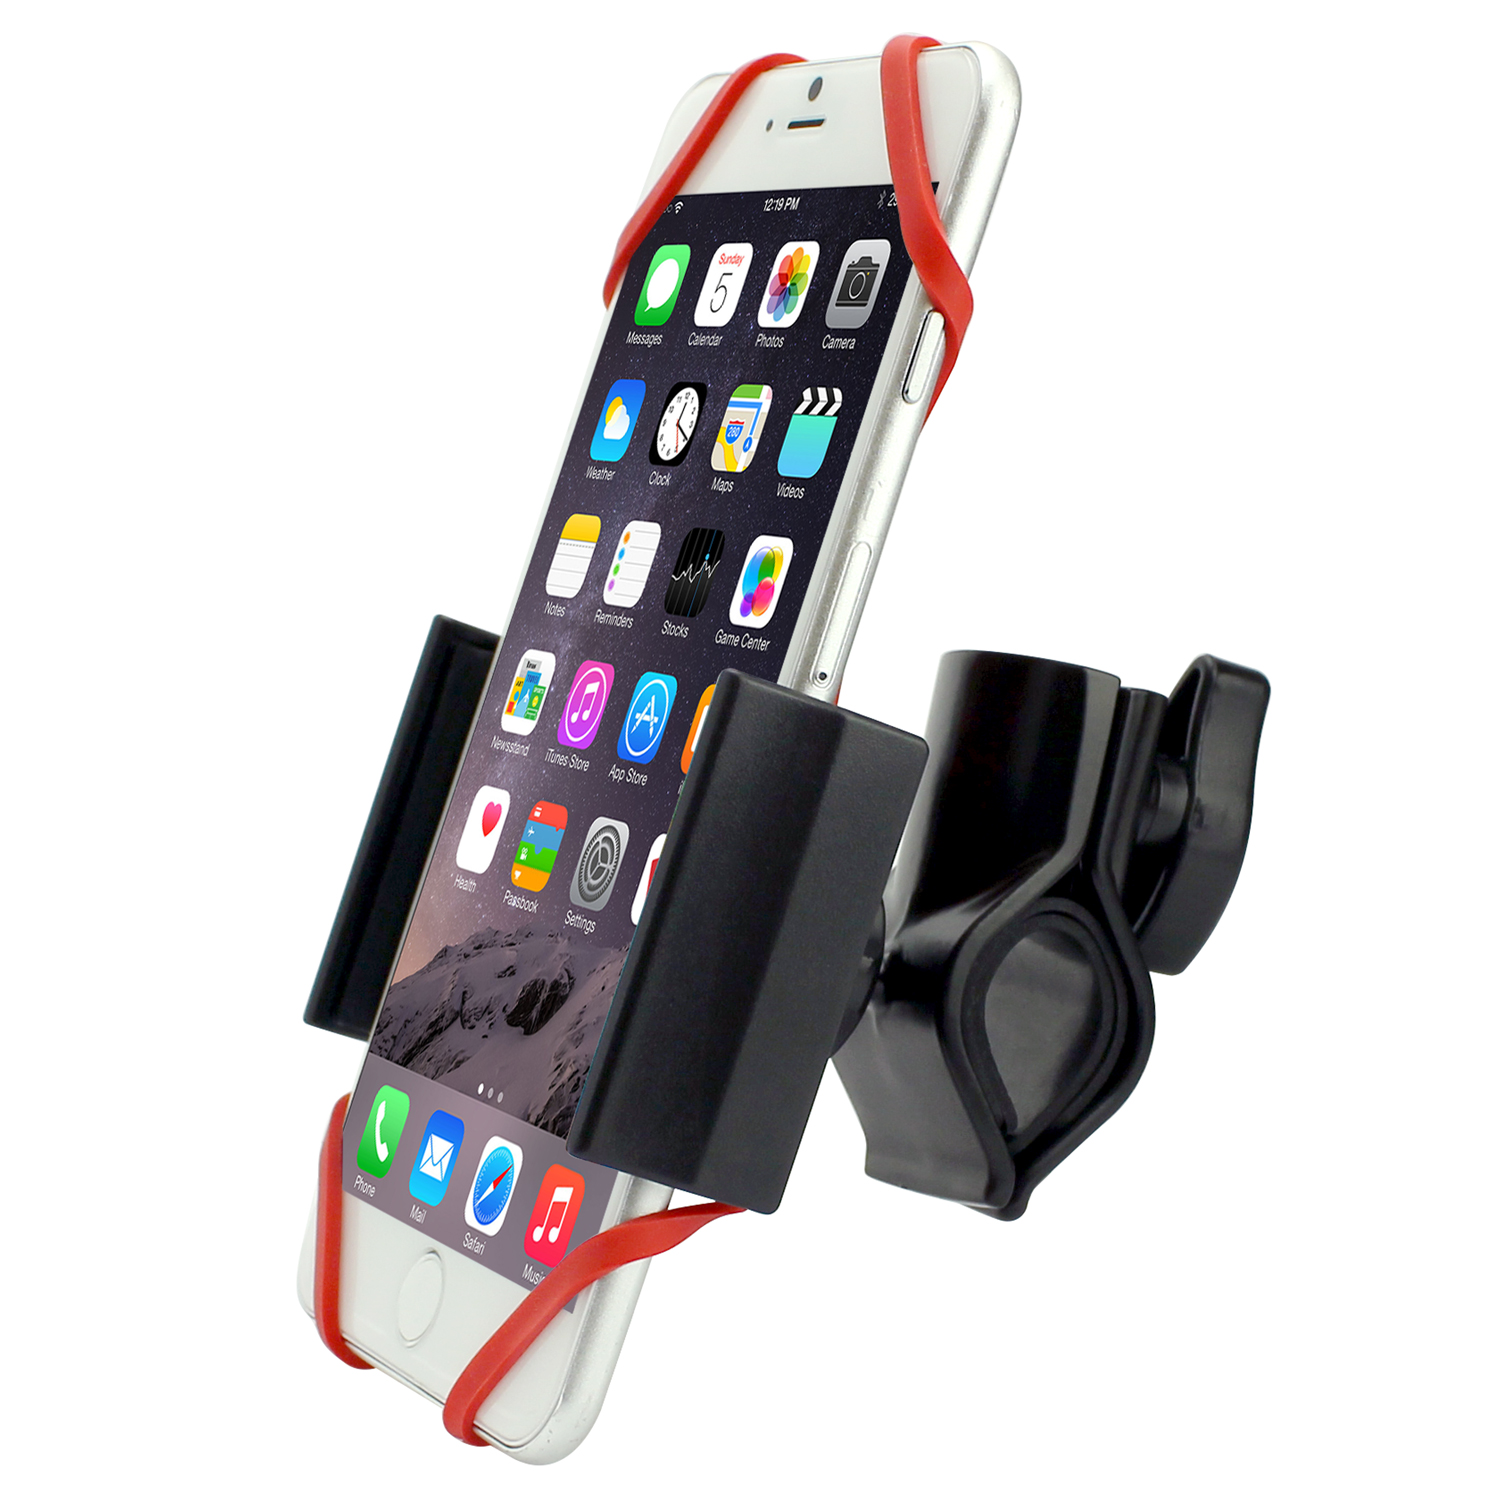 Nokia Lumia 730 Bike Phone Mount Adjustable Black